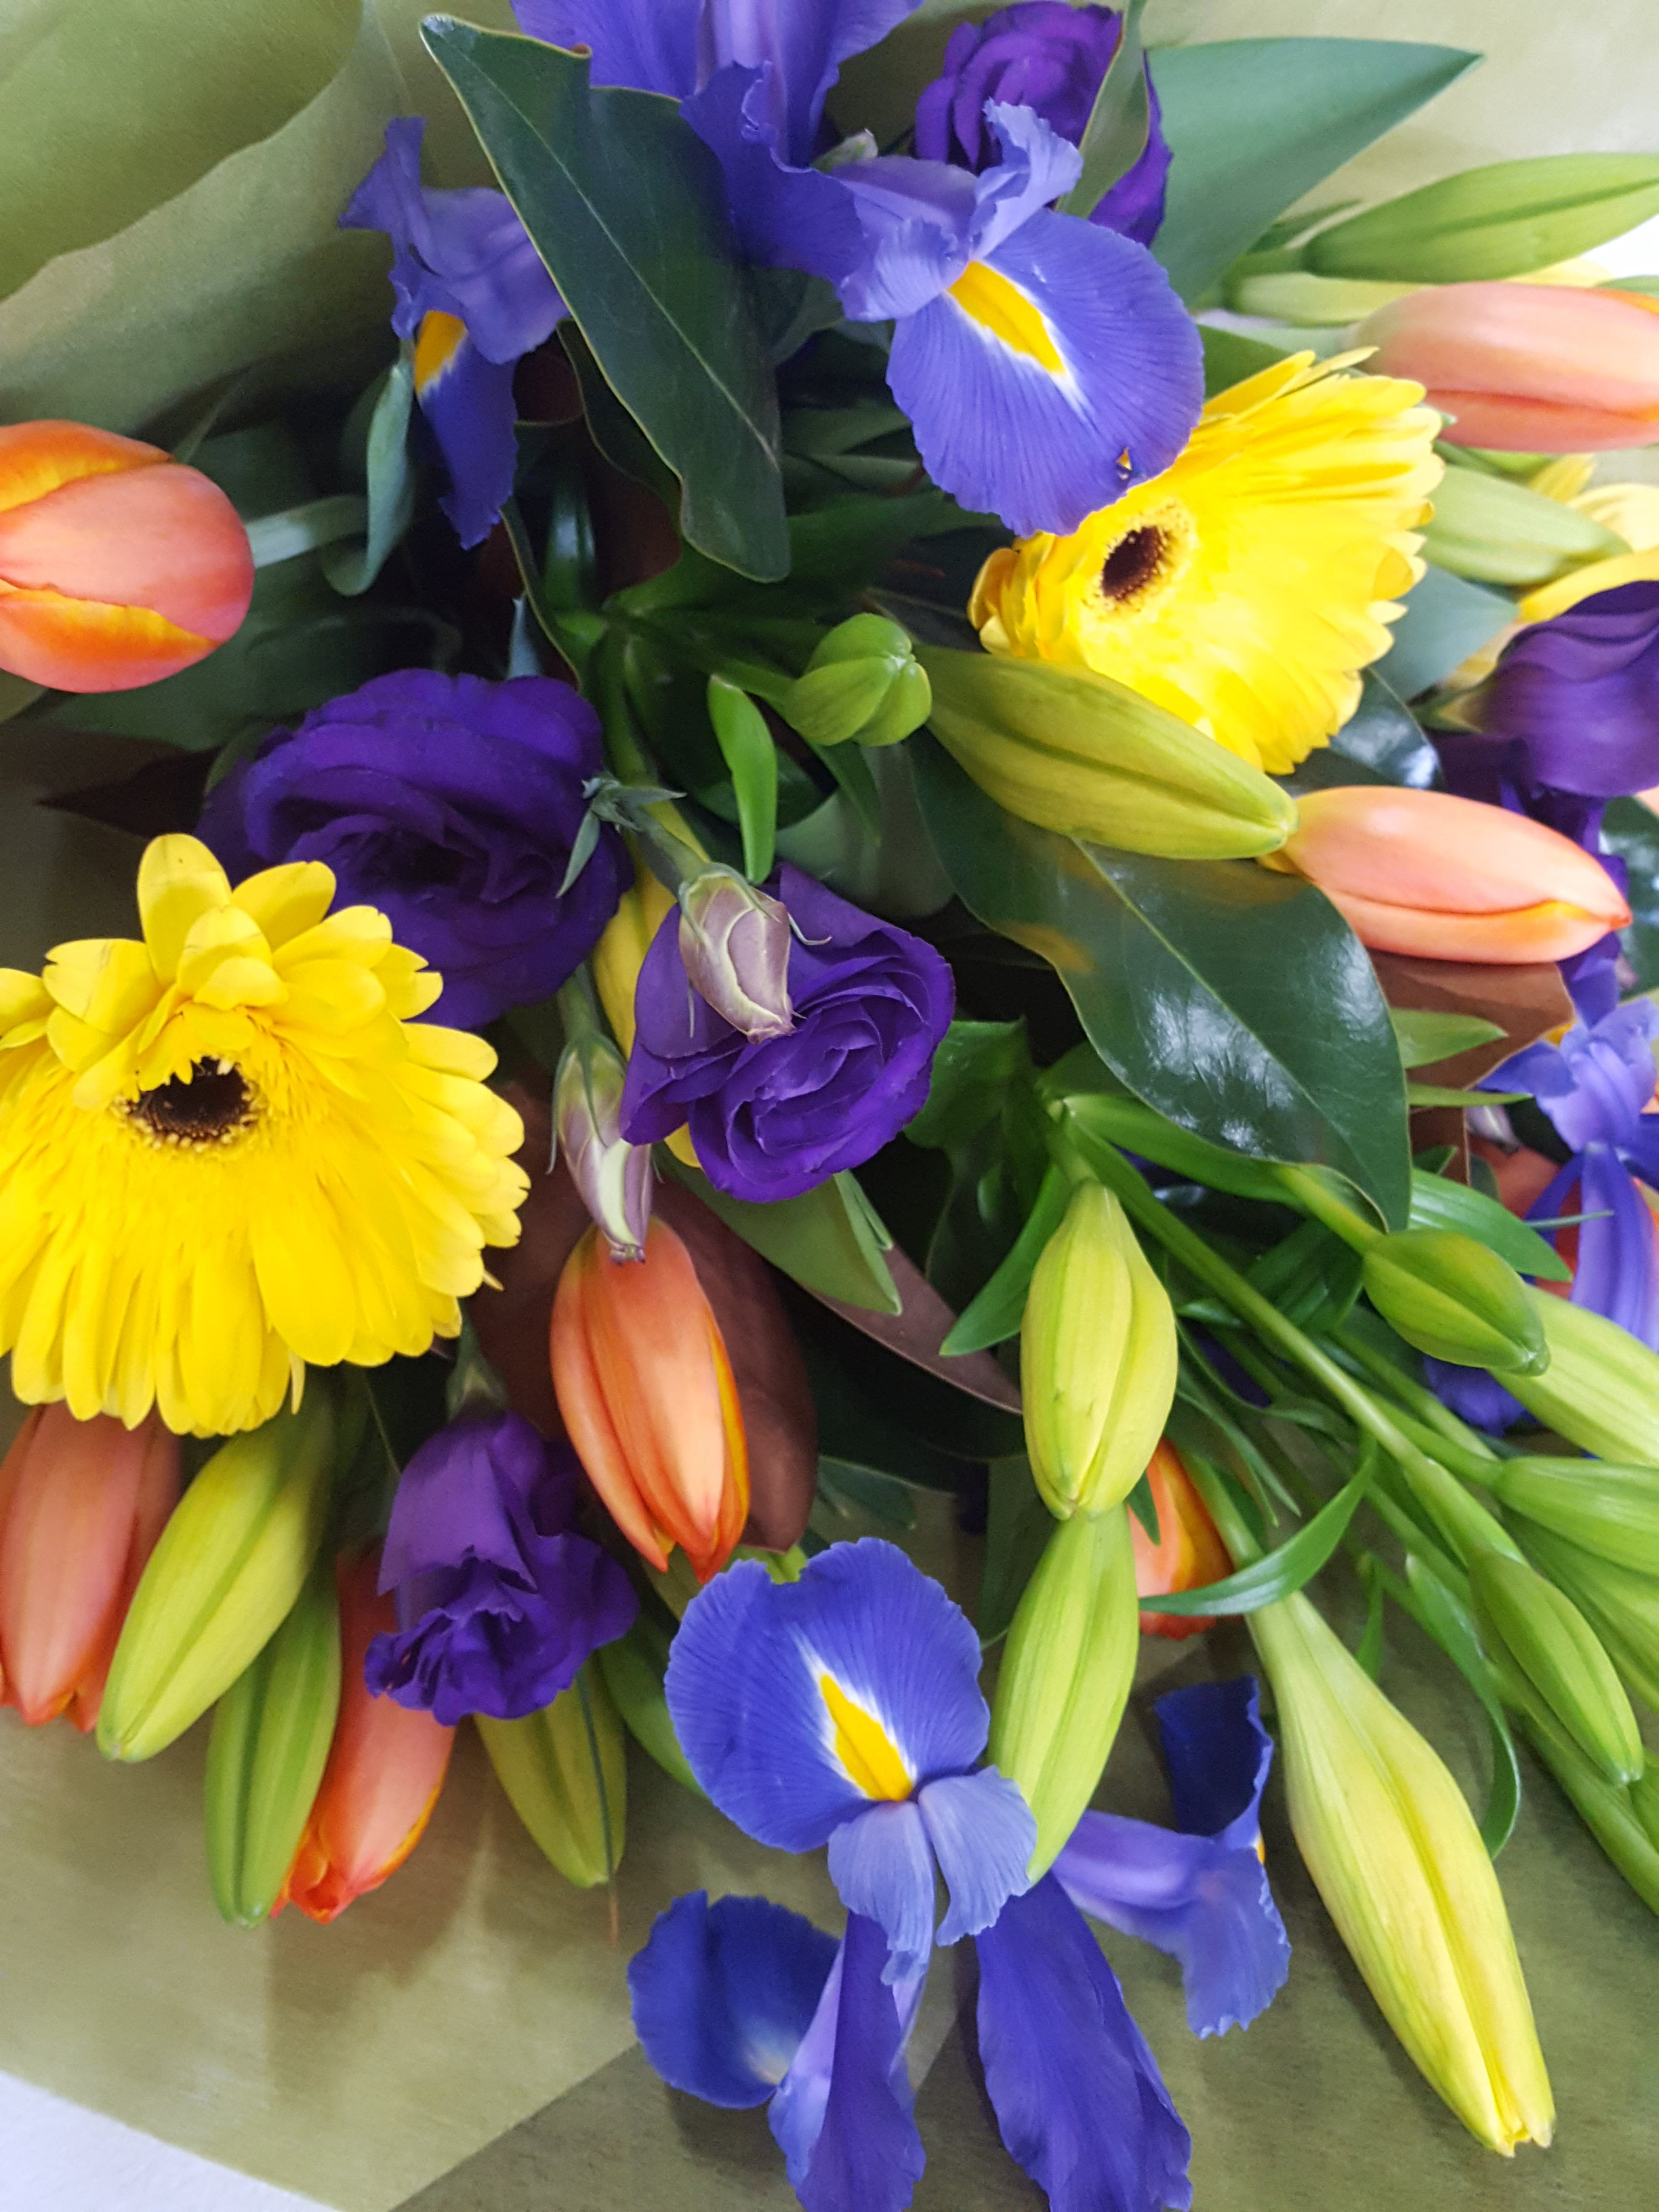 A selection of brightly coloured seasonal flowers such as iris,lilies,tulips,lisianthus & gerberas.